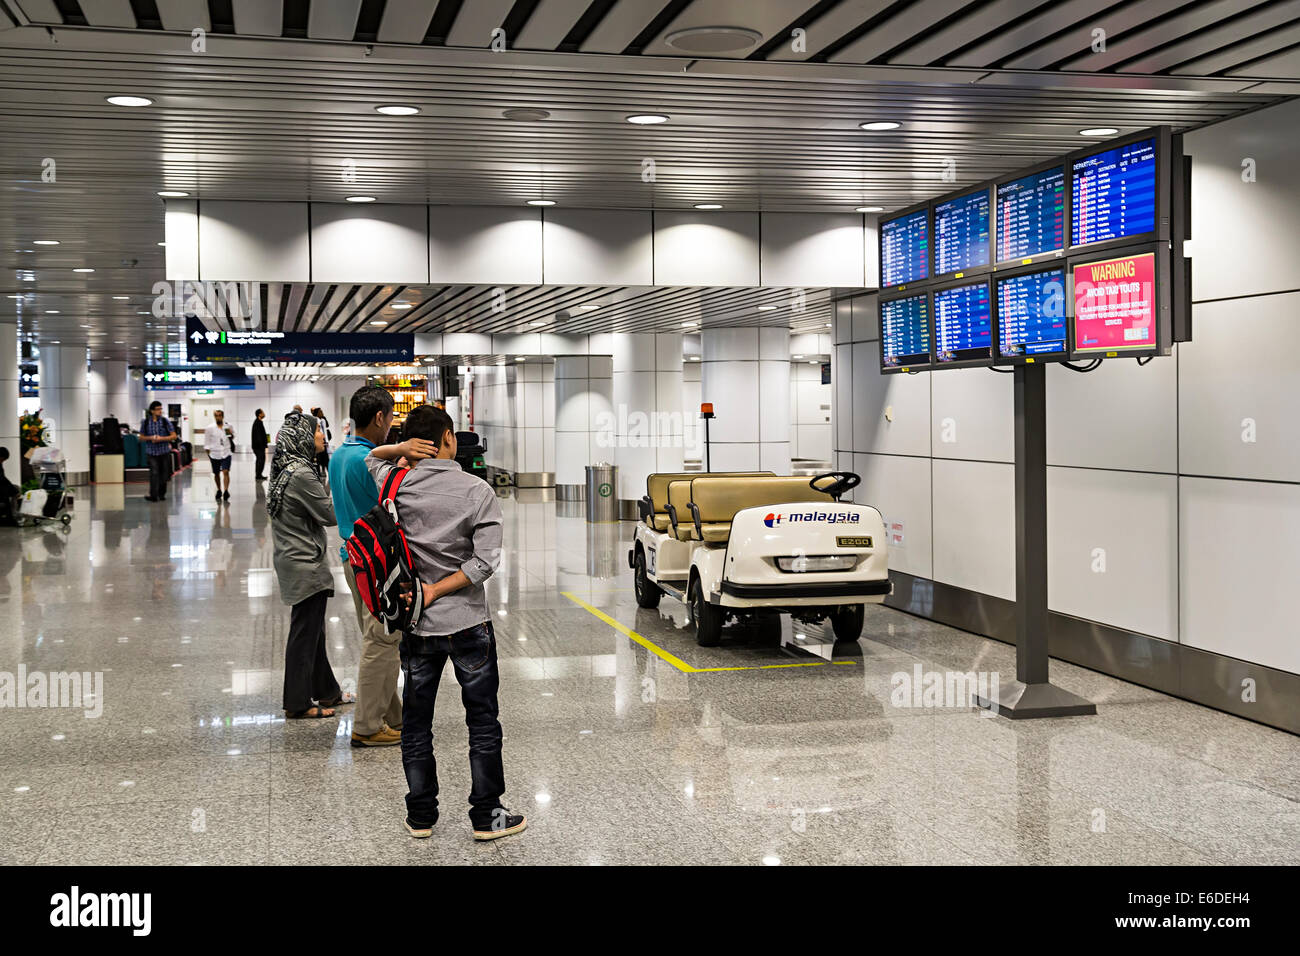 People in transit looking at information screens in airport, Miri, Malaysia - Stock Image